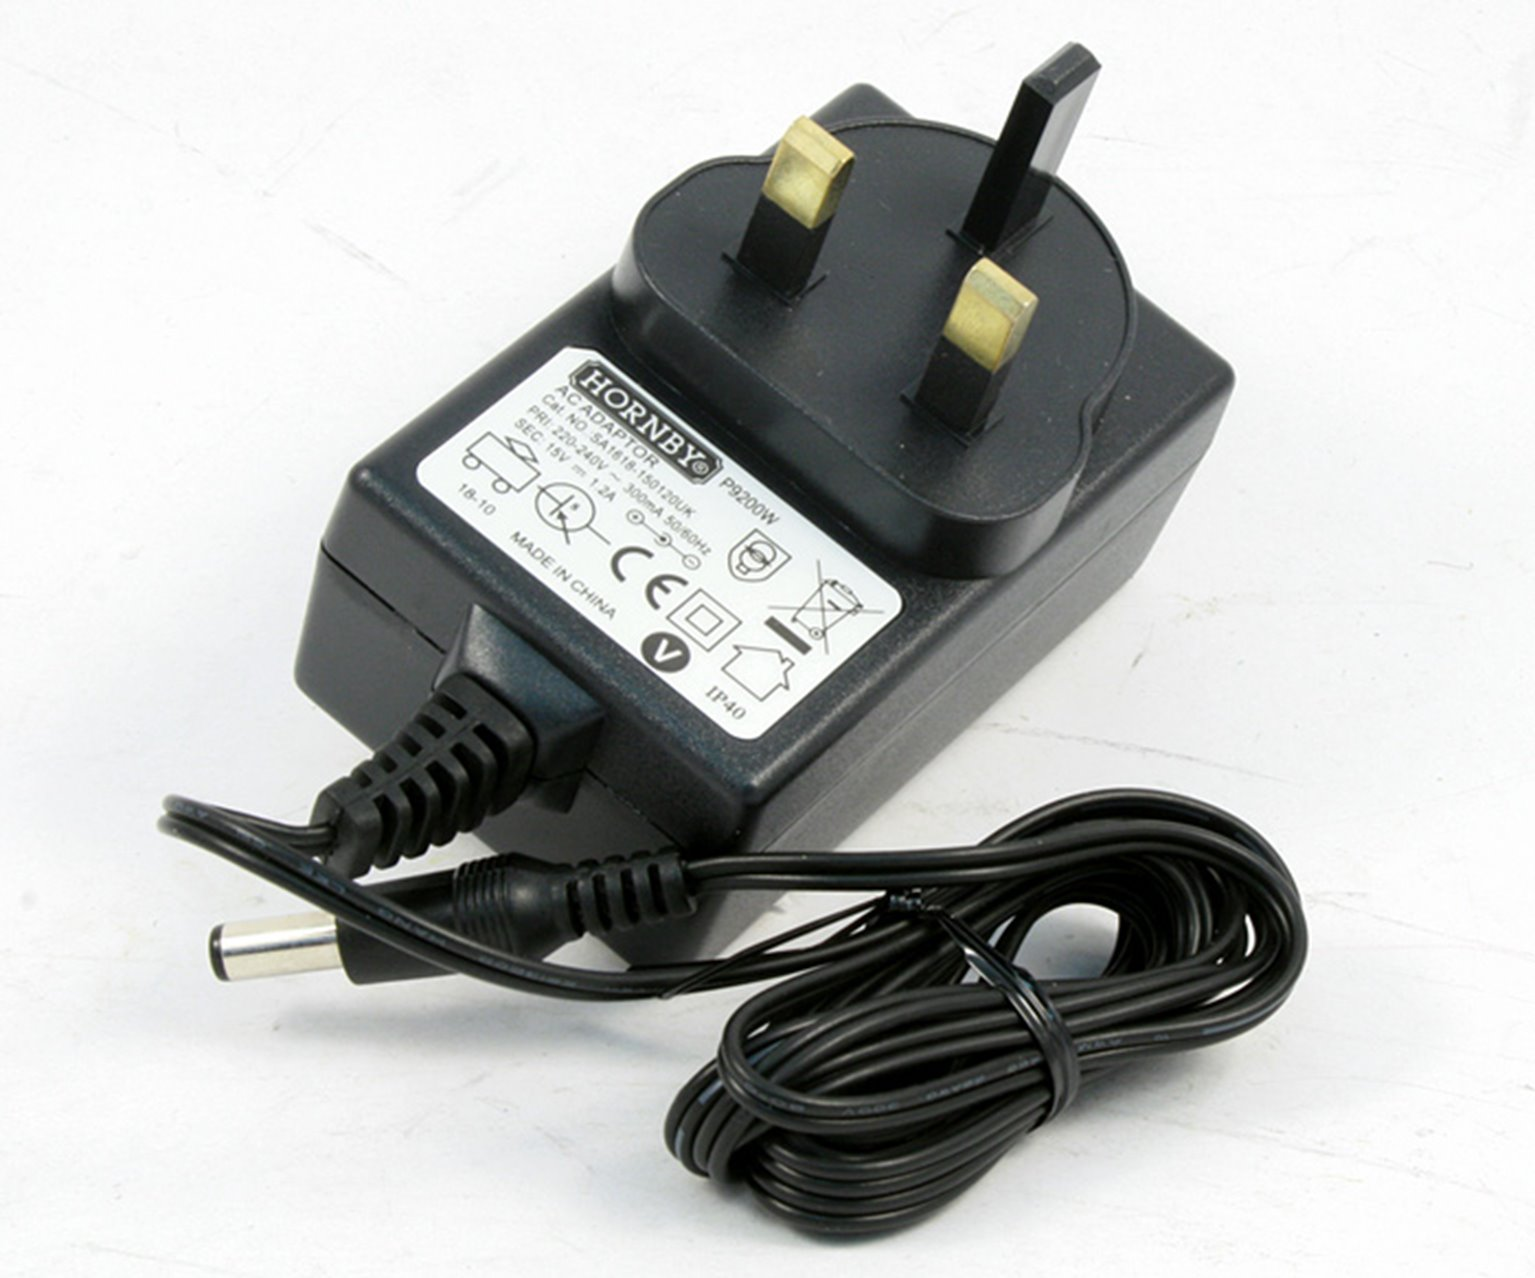 UK Power Supply Unit